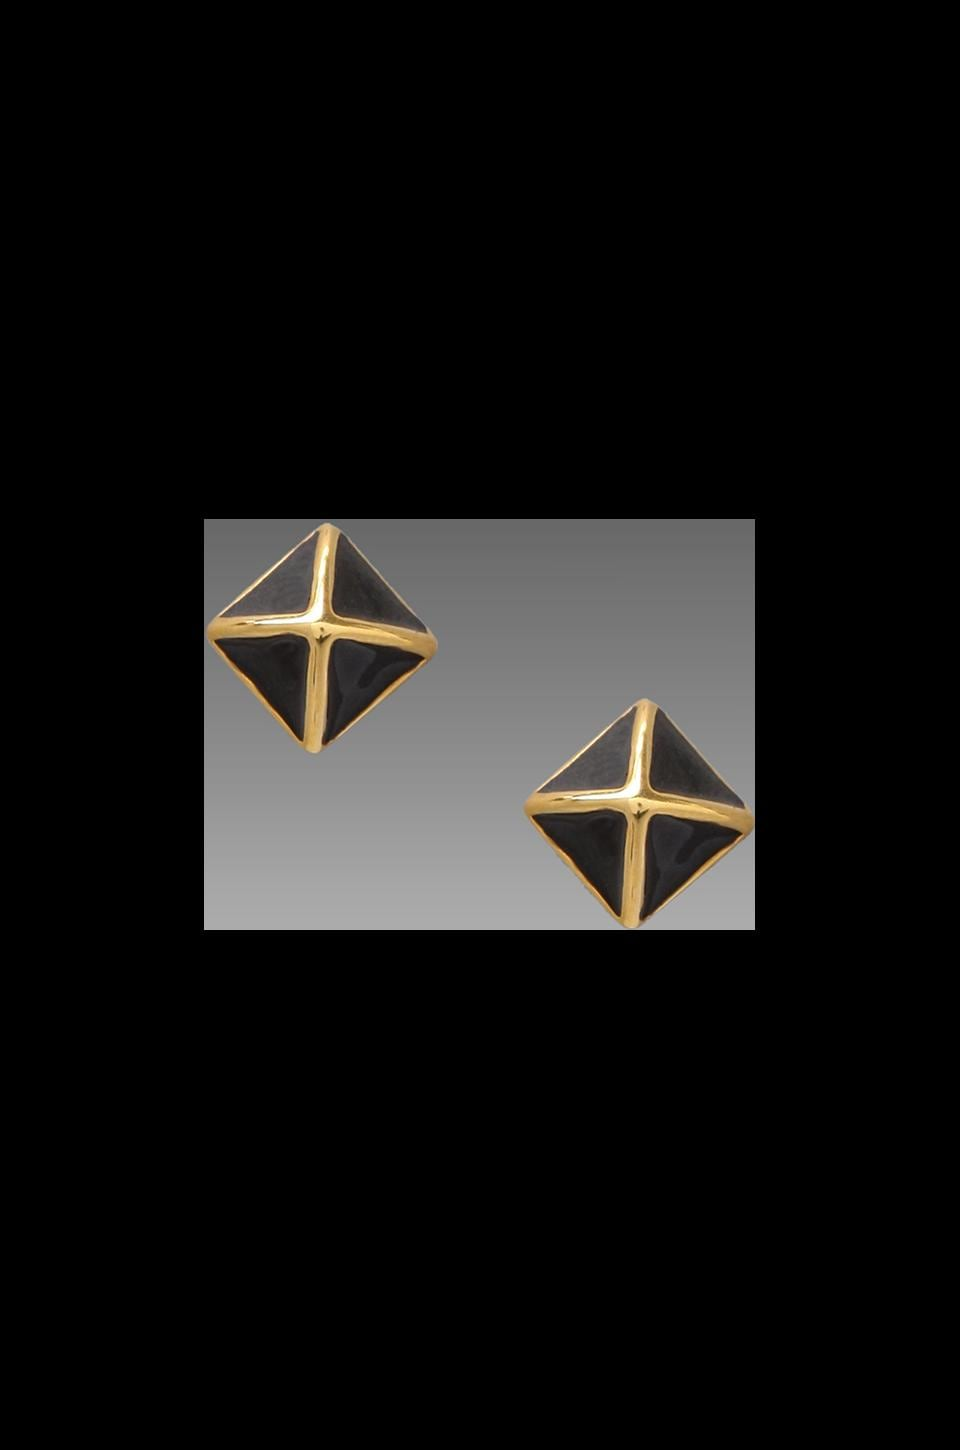 Rebecca Minkoff Small Enamel Stud Earring in Gold/Black